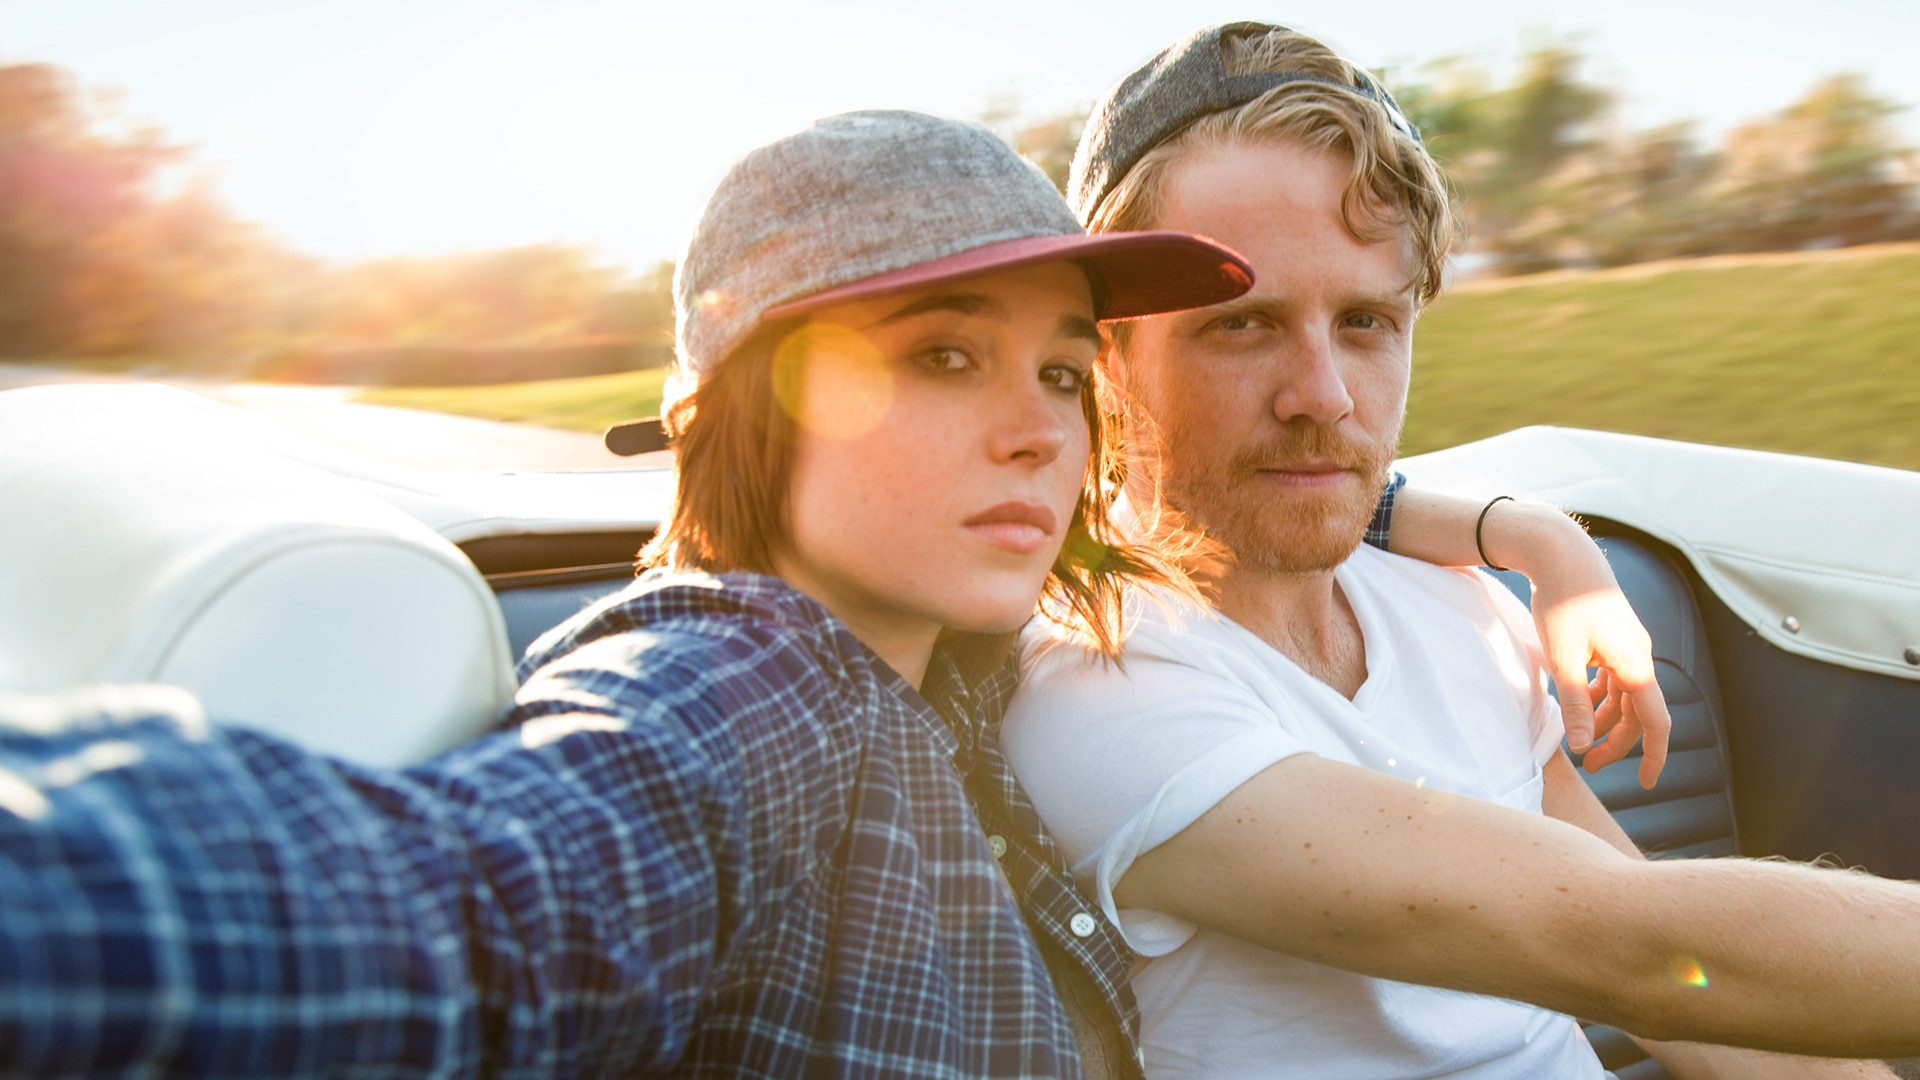 Ellen Page and Ian Daniel pose